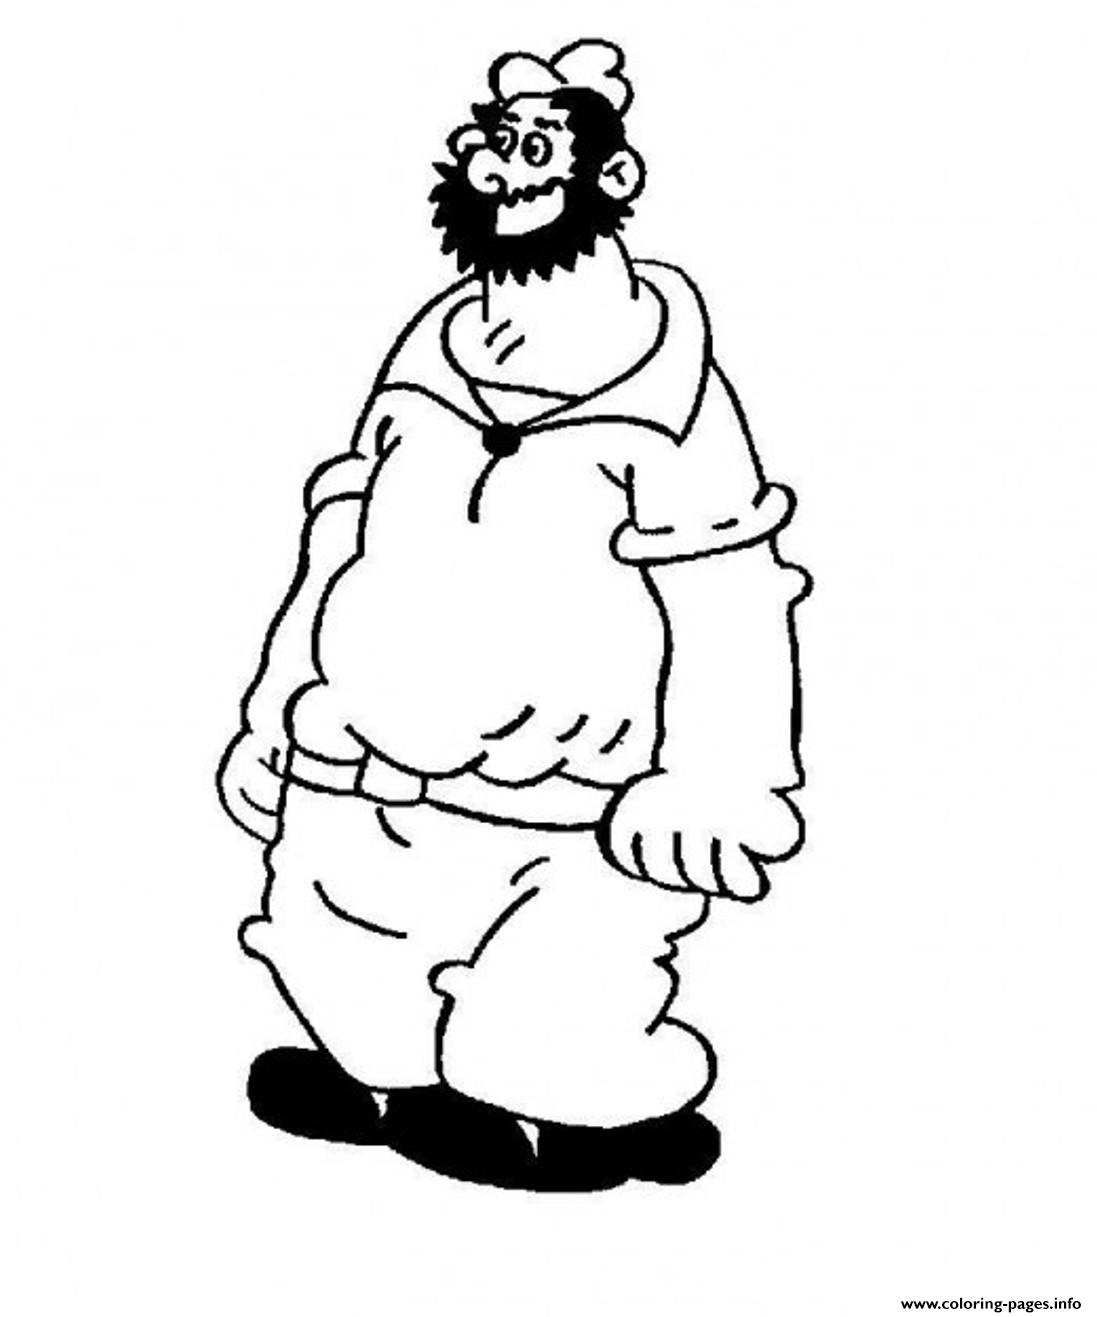 Bluto Popeye Sd2b3 Coloring Pages Printable